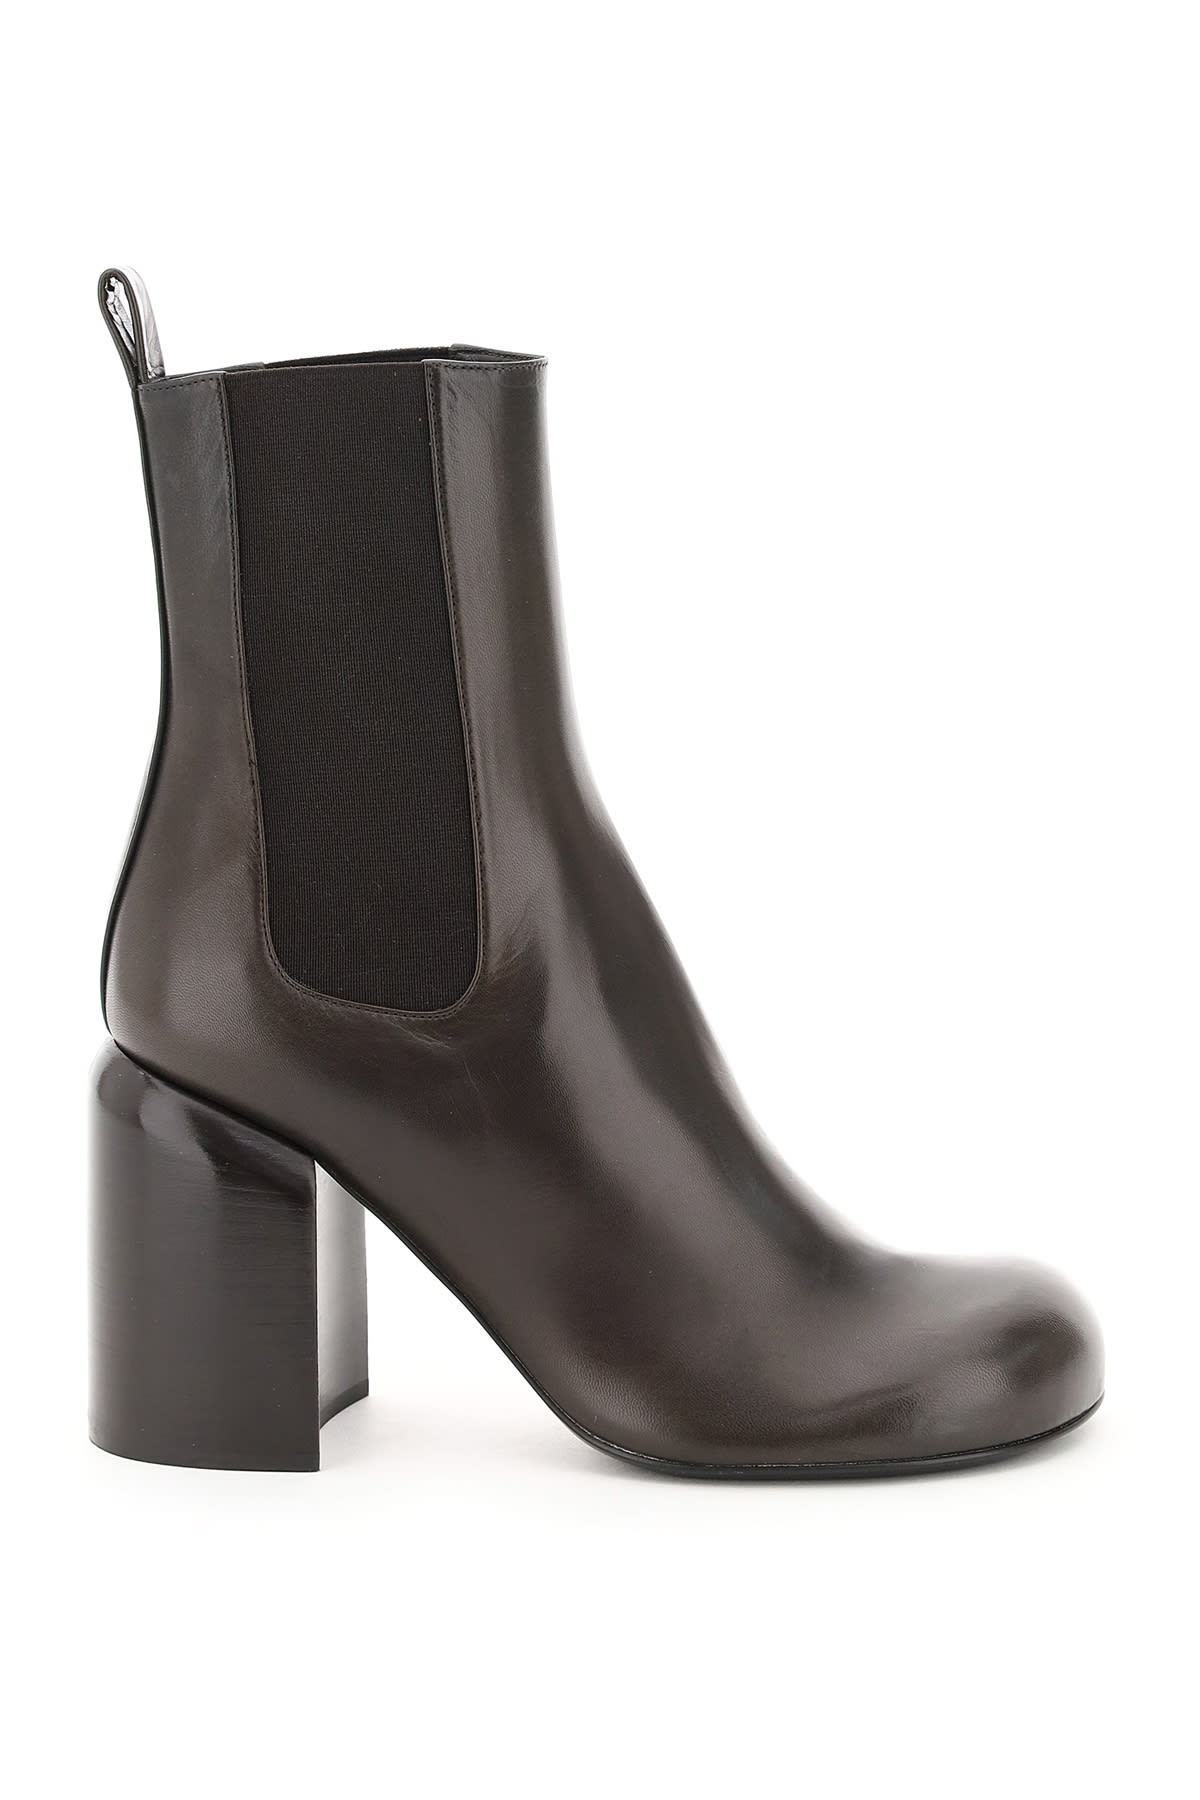 Buy Jil Sander Ankle Boots online, shop Jil Sander shoes with free shipping